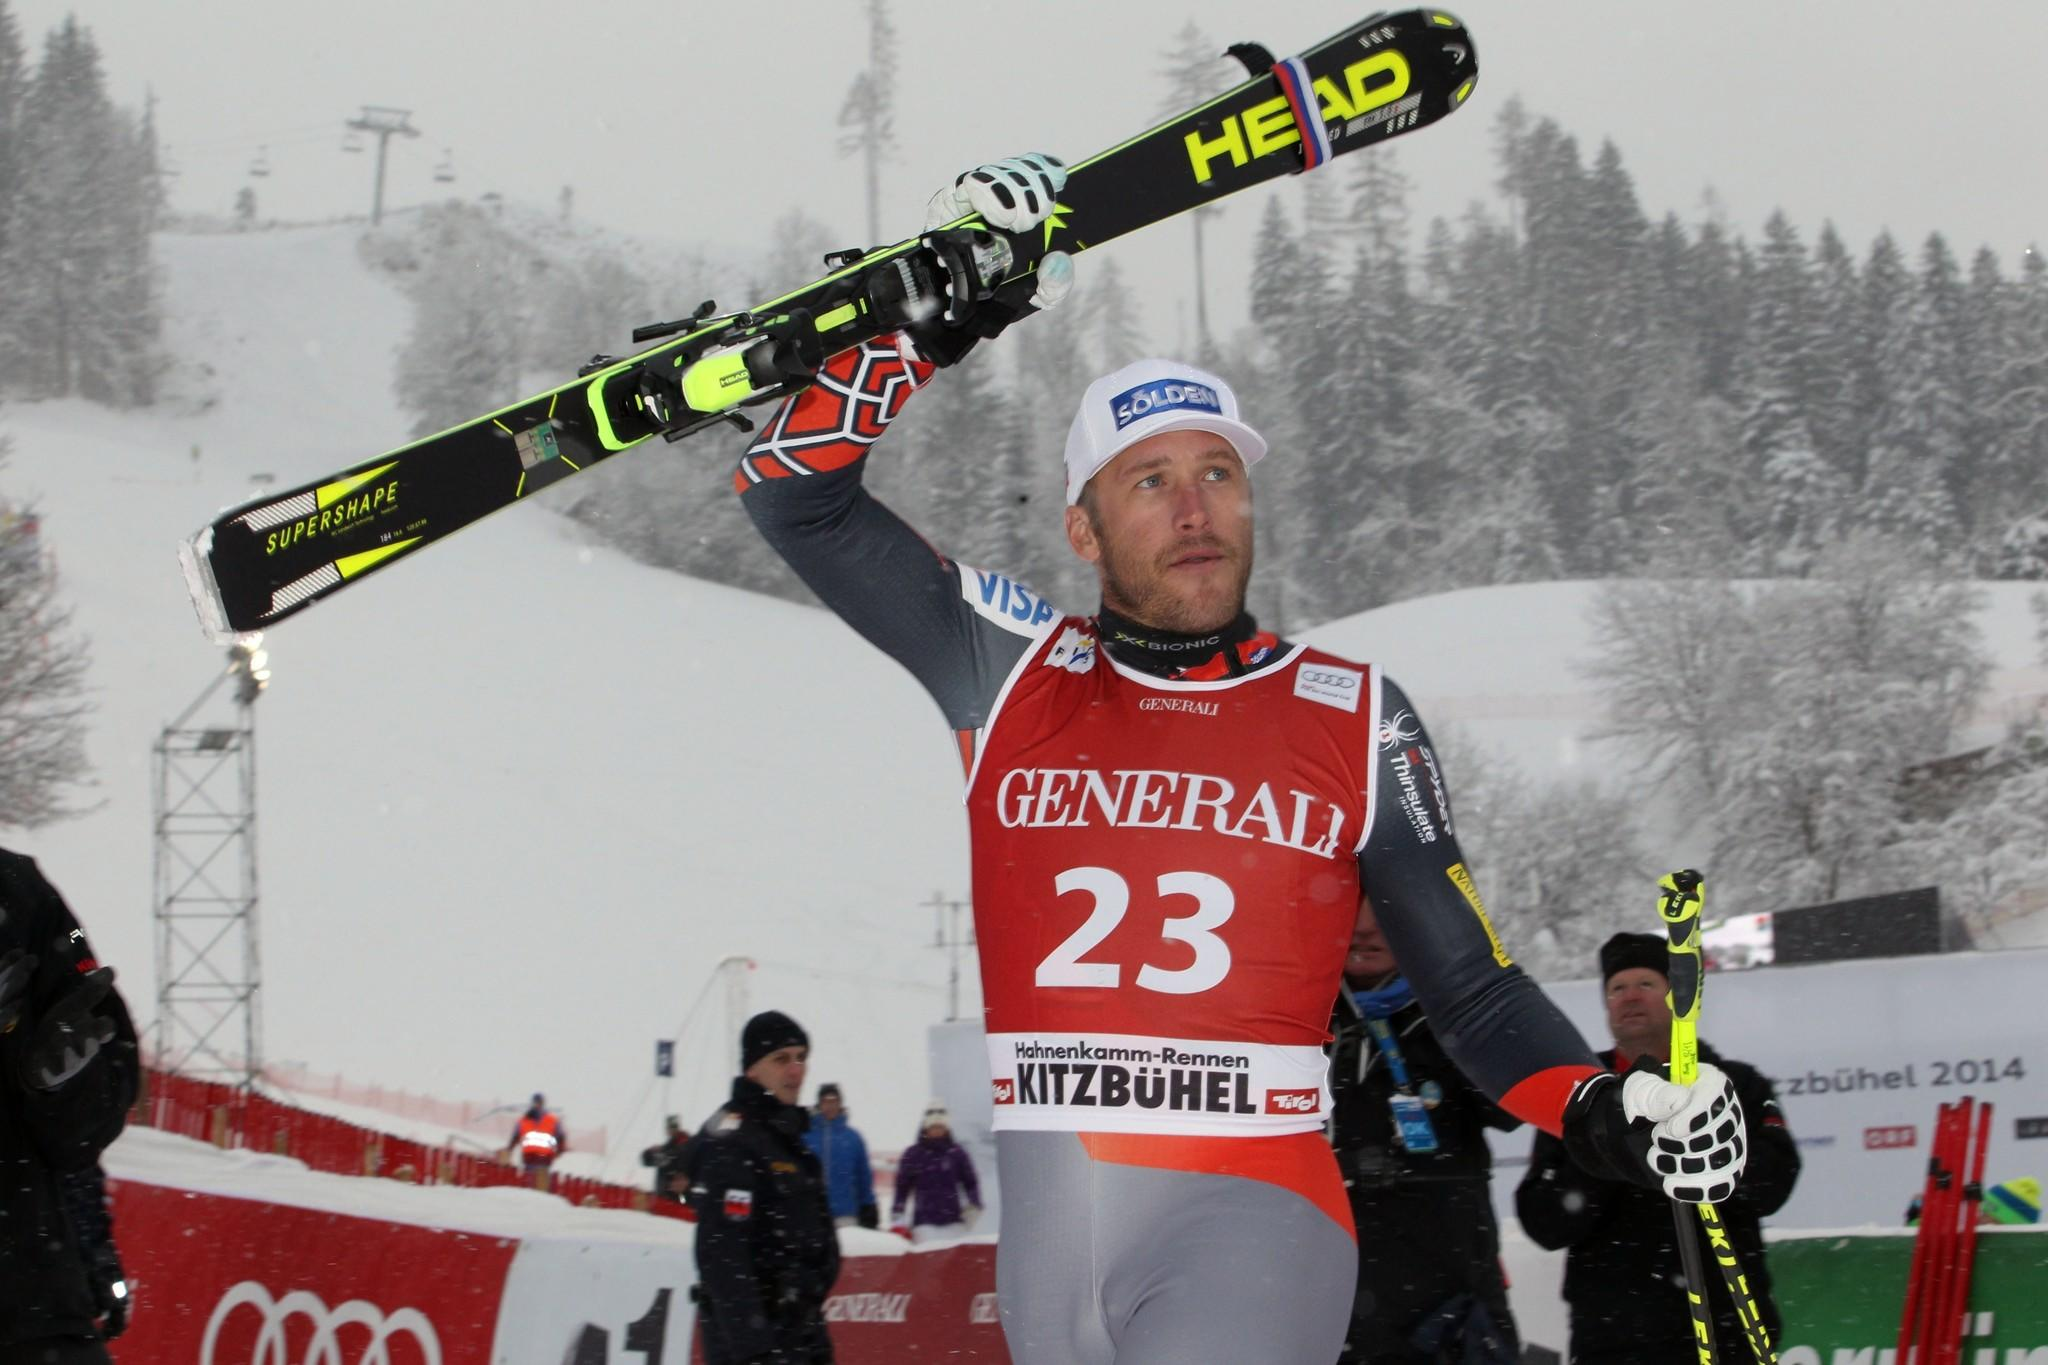 Bode Miller of the USA takes 2nd place during the Audi FIS Alpine Ski World Cup Men's Super-G on January 26, 2014 in Kitzbuehel, Austria.